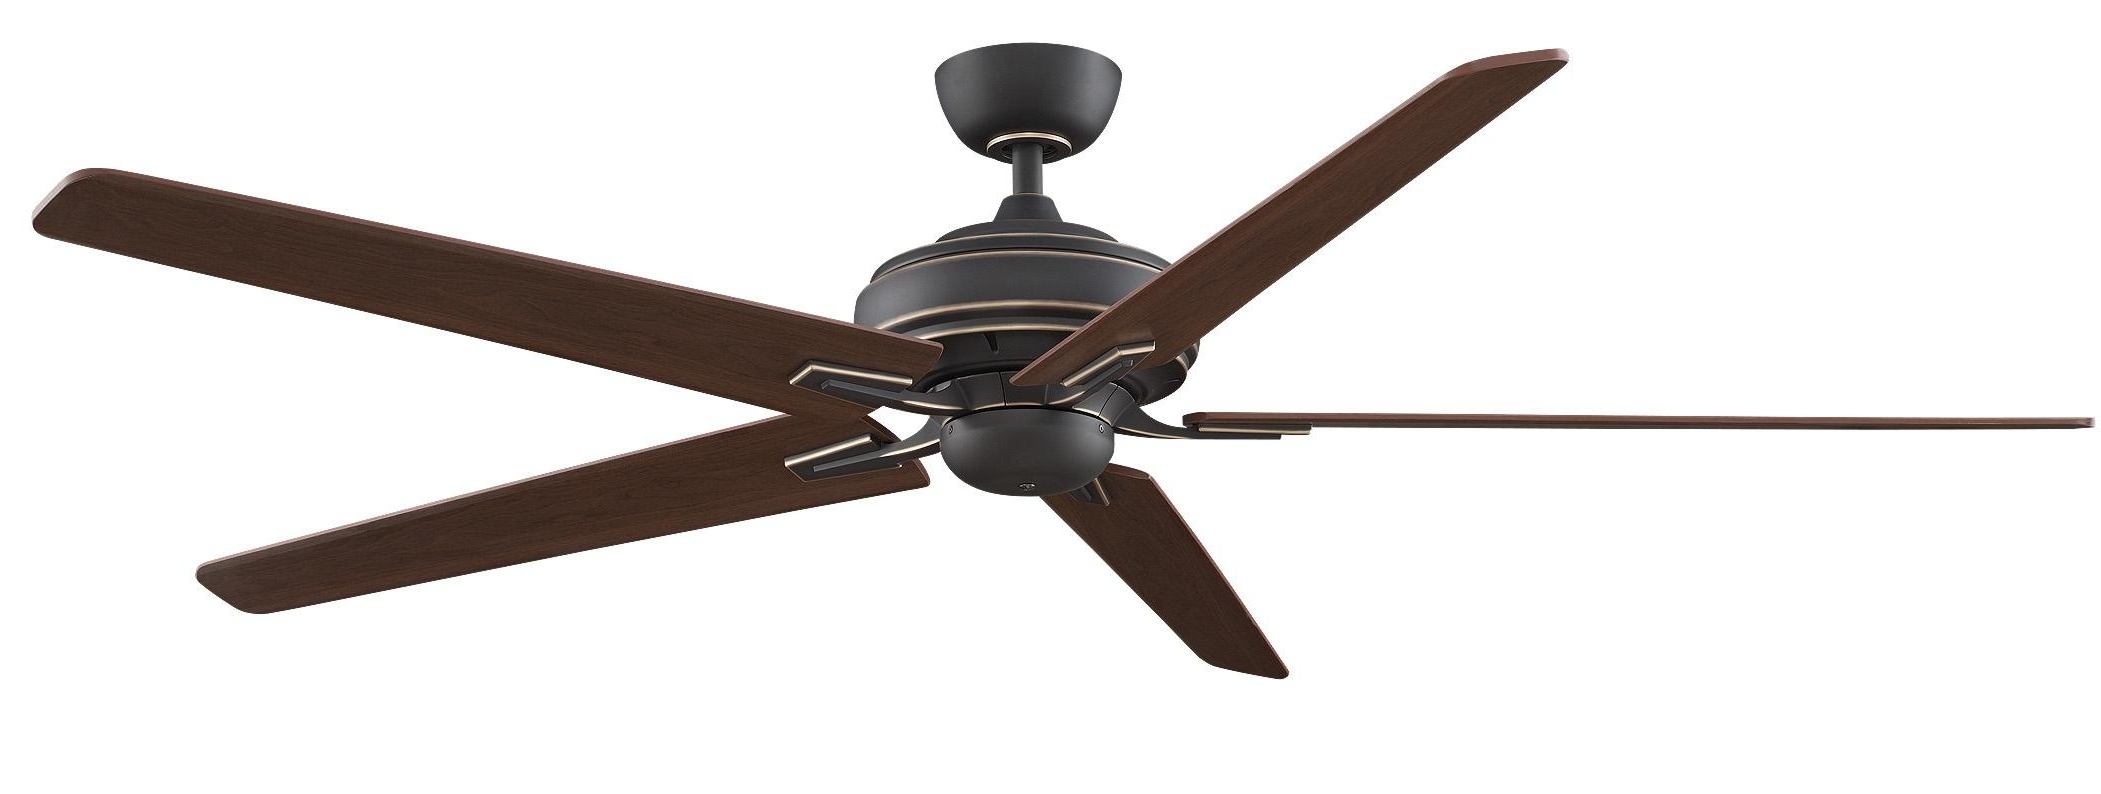 Inch Outdoor Ceiling Fan With 60 Ceiling Fan With Light Within Favorite Outdoor Ceiling Fans And Lights (View 7 of 20)